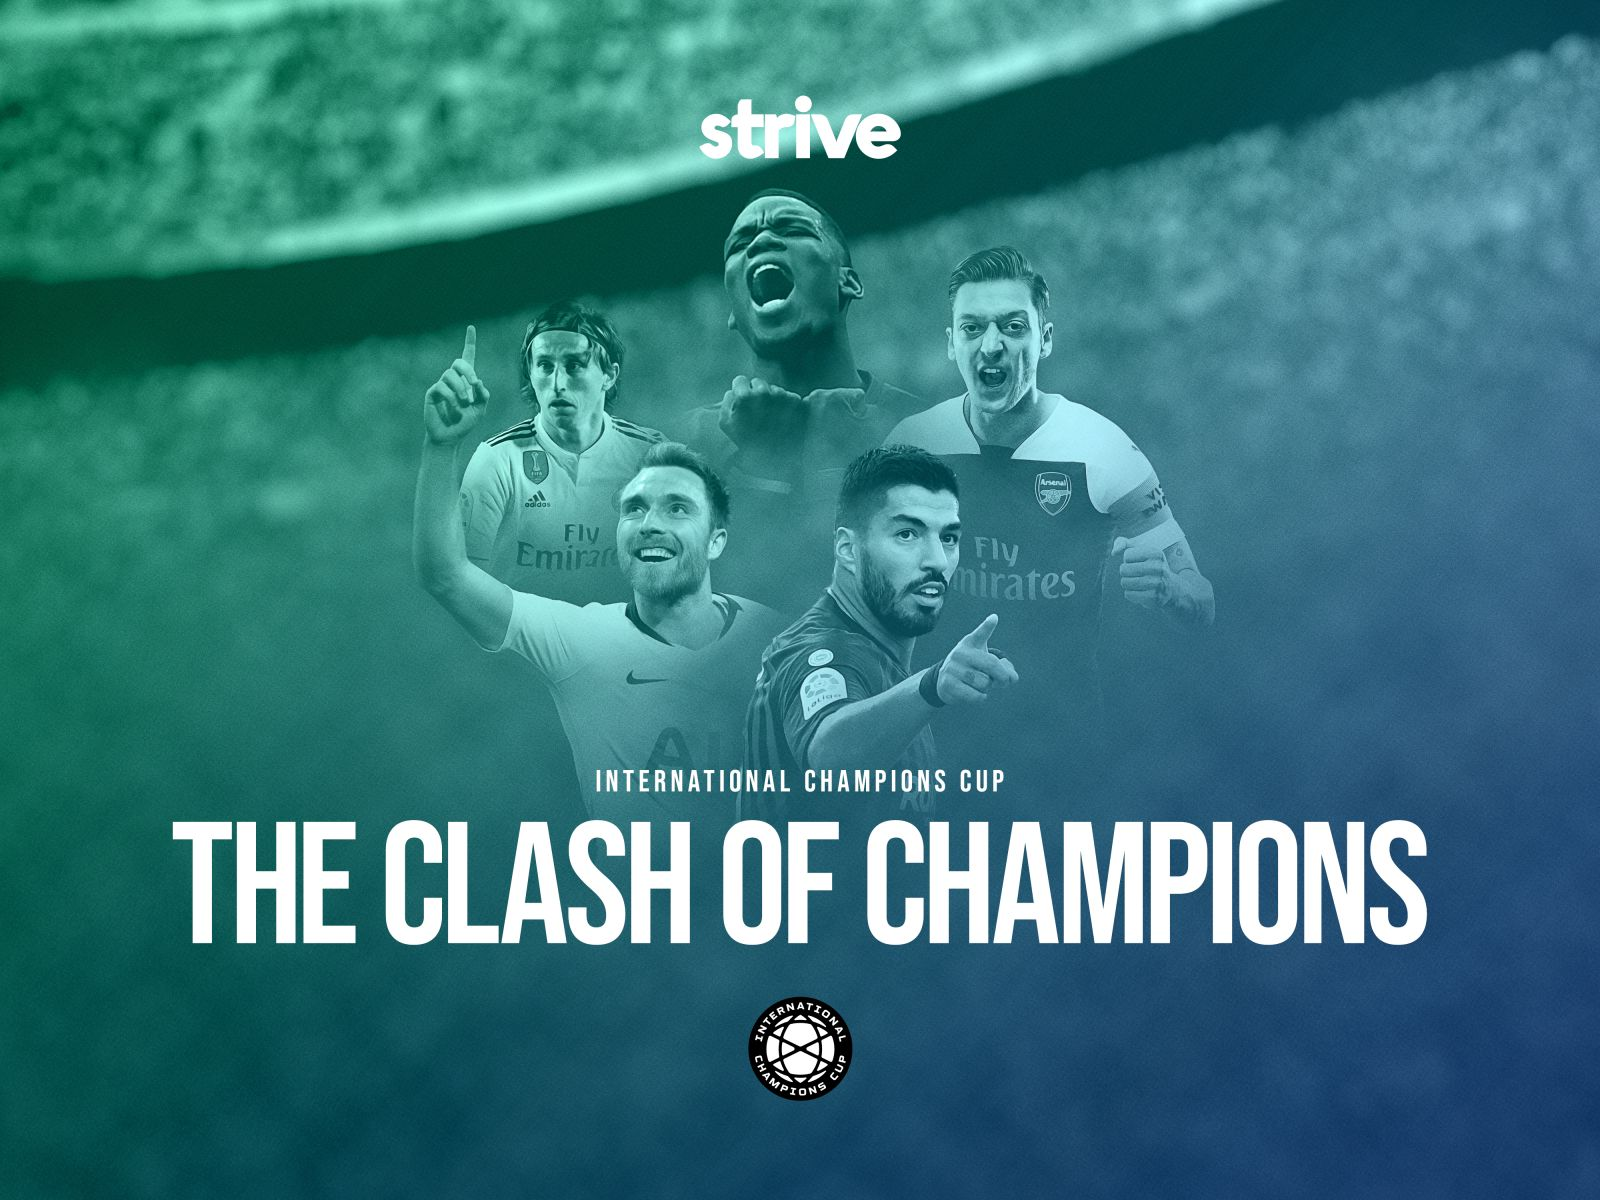 Strive Sport Intertional champions cup